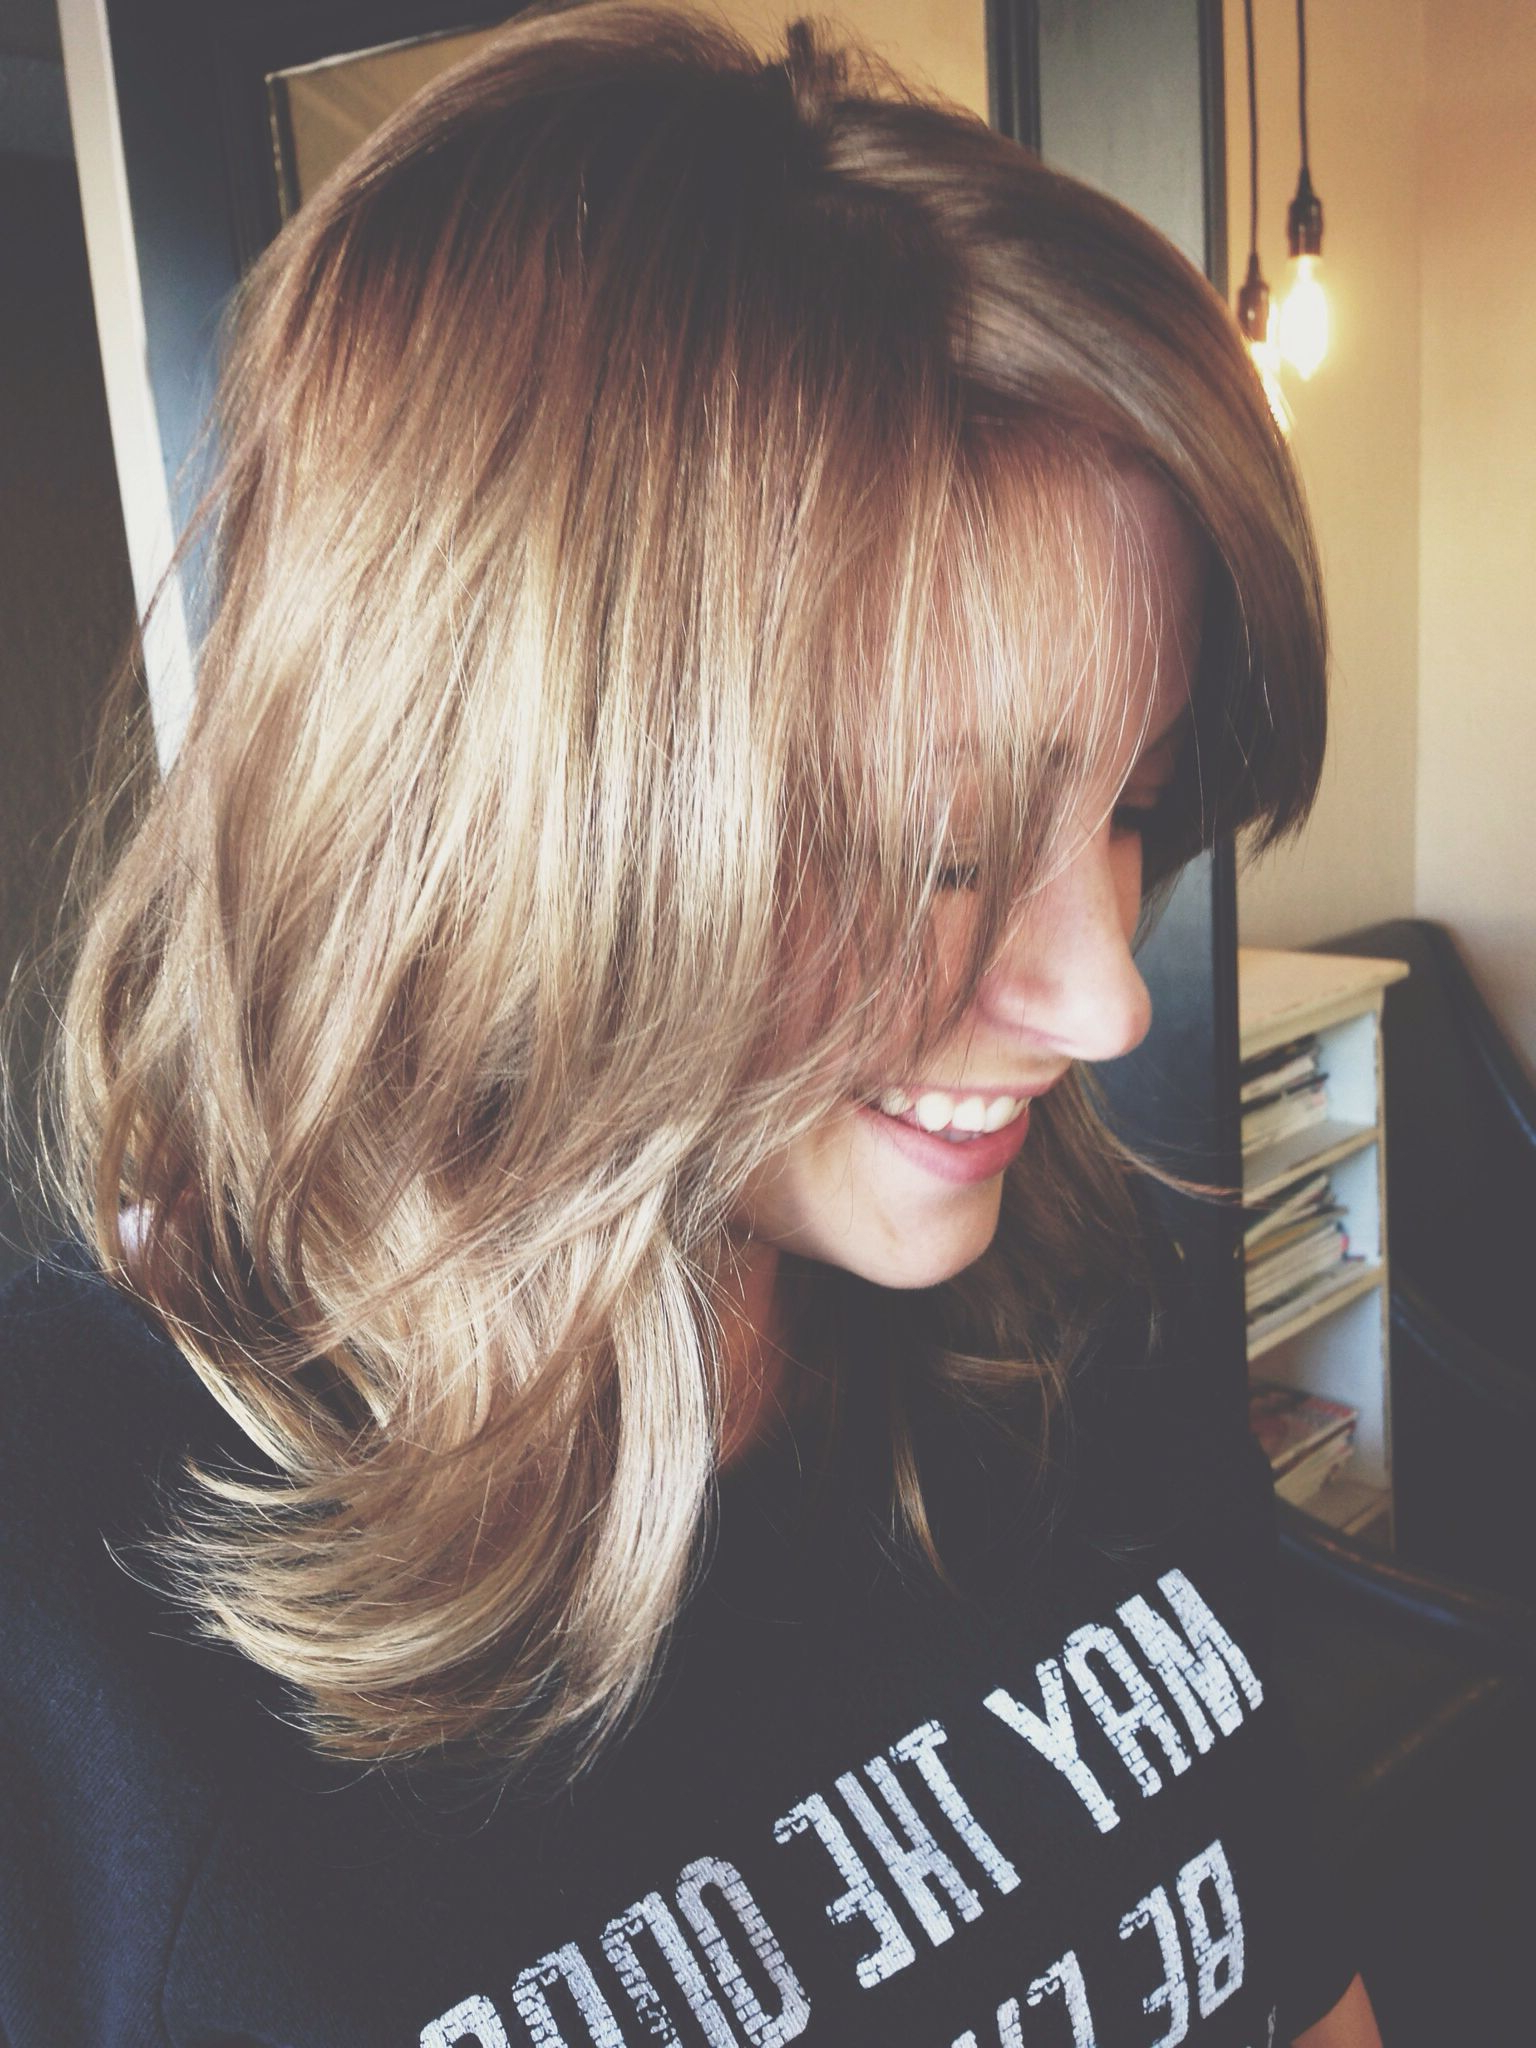 Tousled Pertaining To Popular Tousled Medium Hairstyles (View 17 of 20)